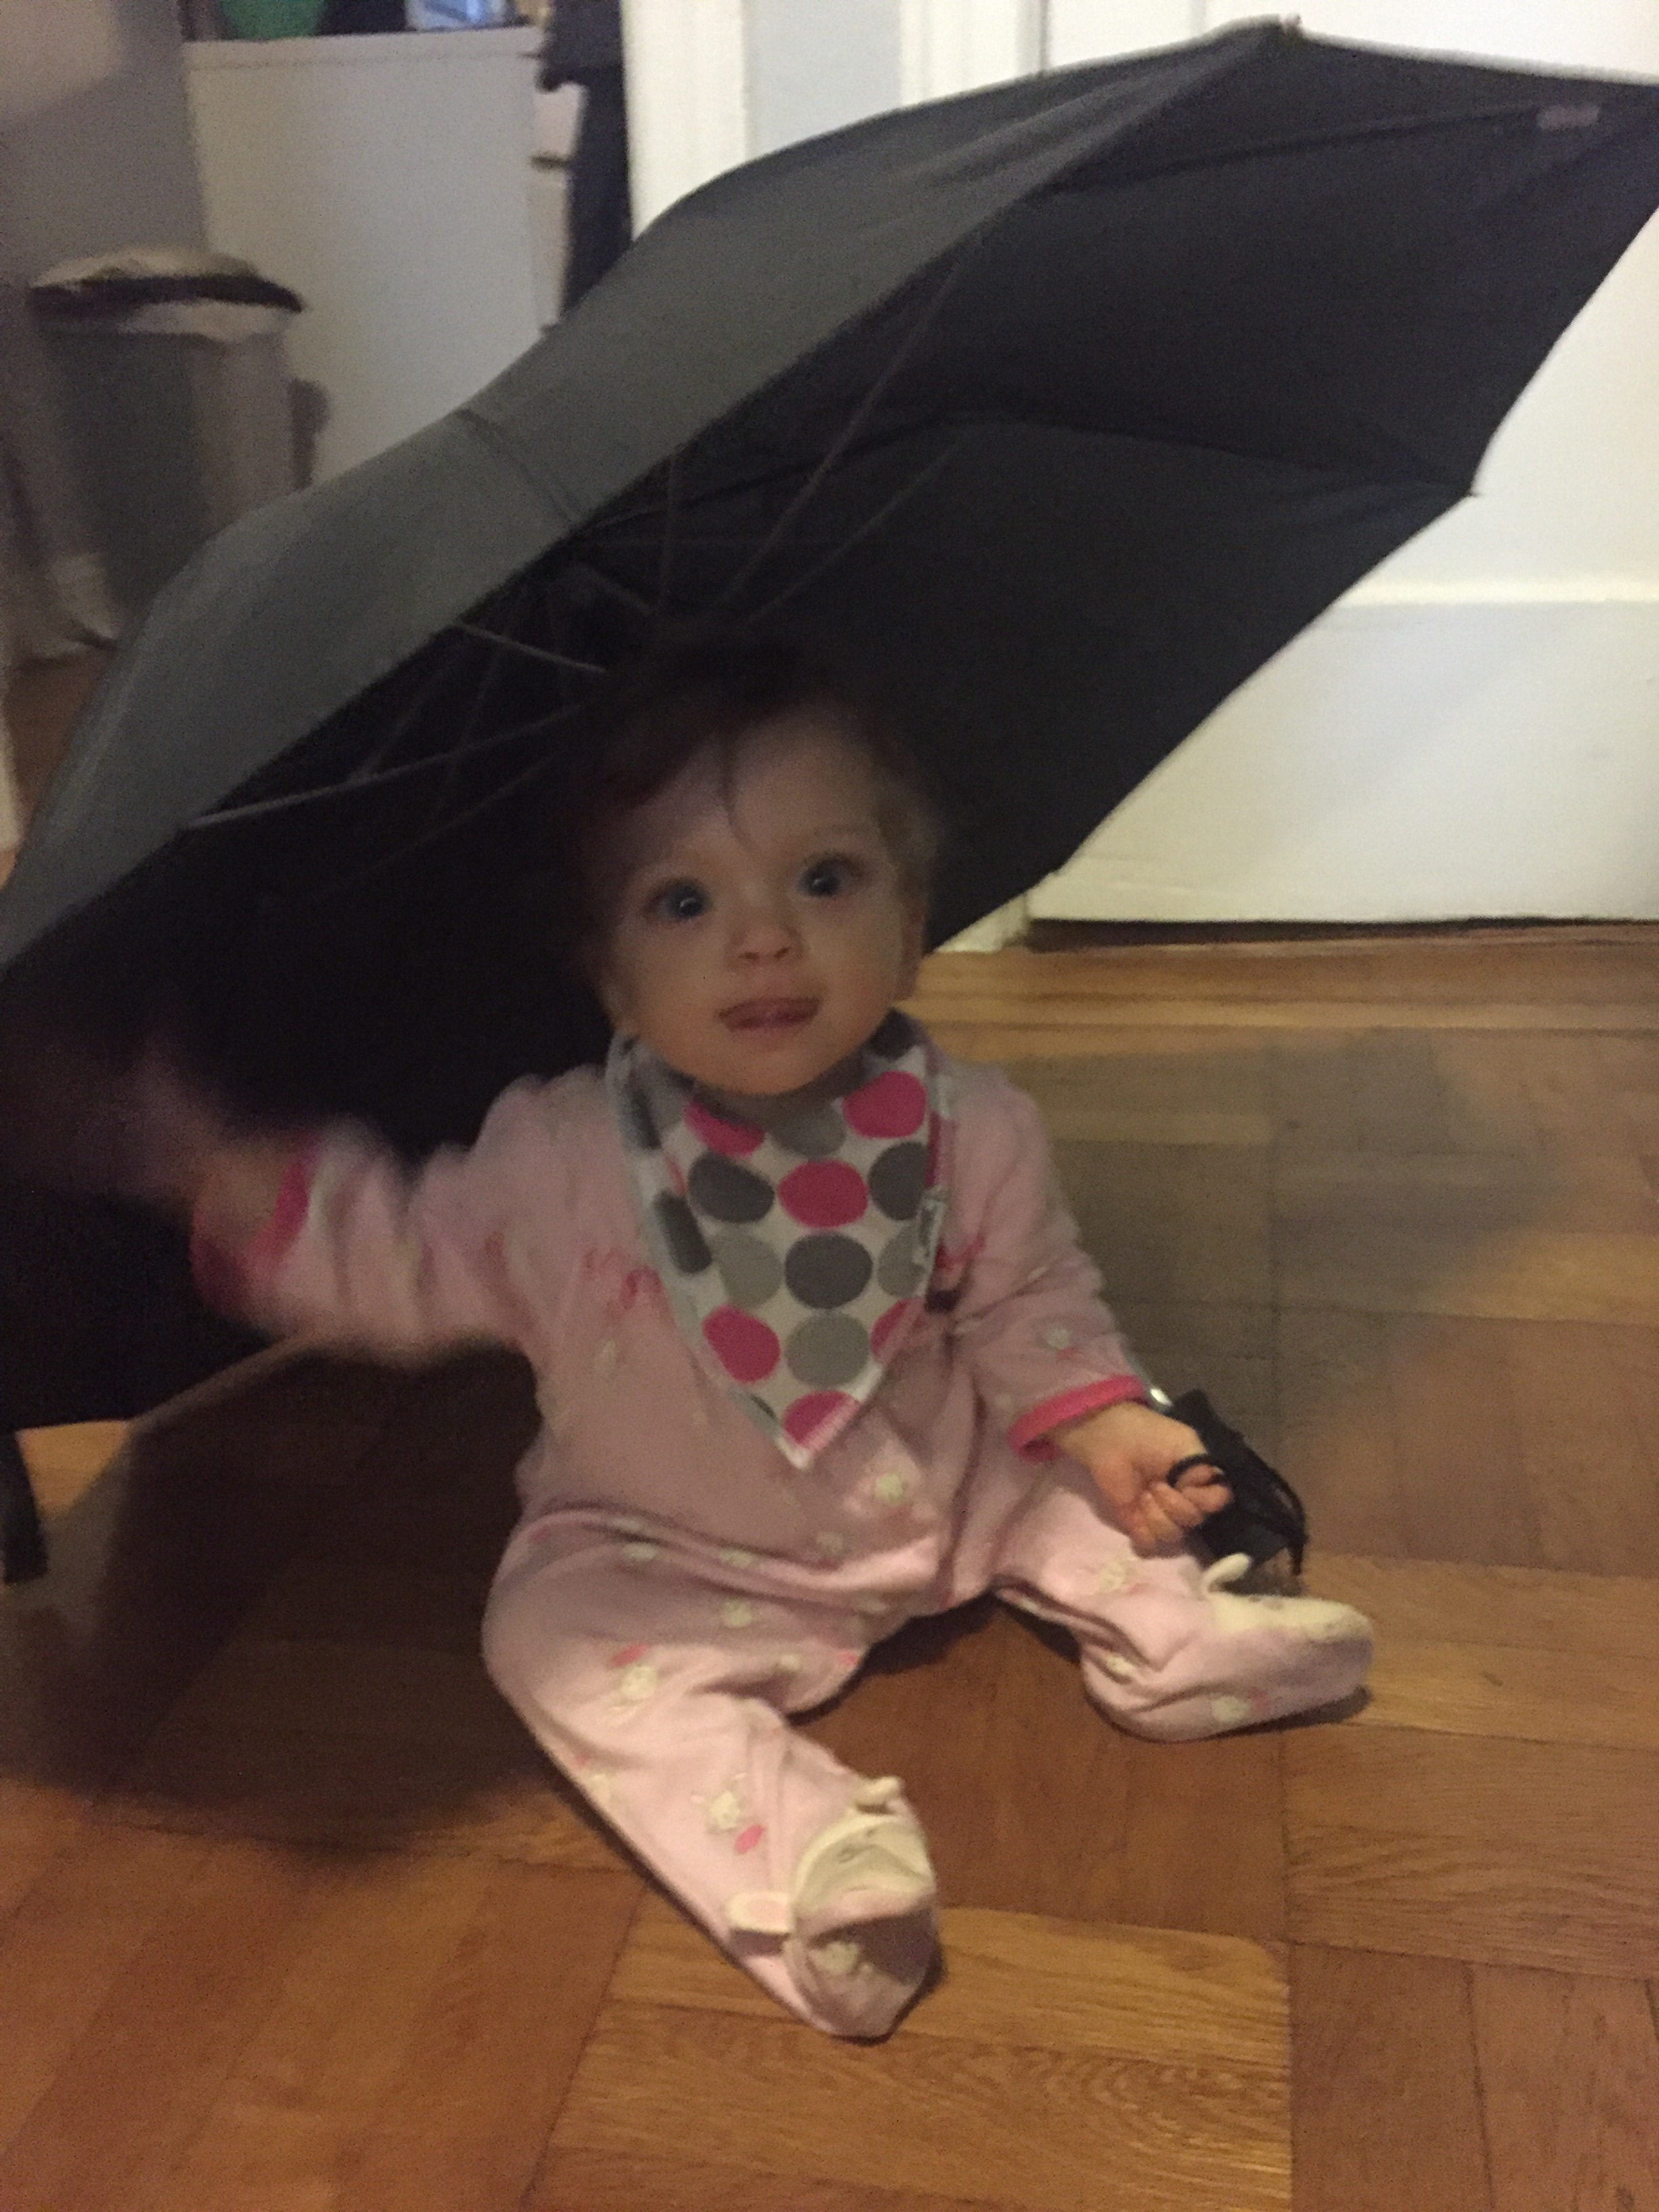 Found mommy's umbrella drying and HAD to check it out!